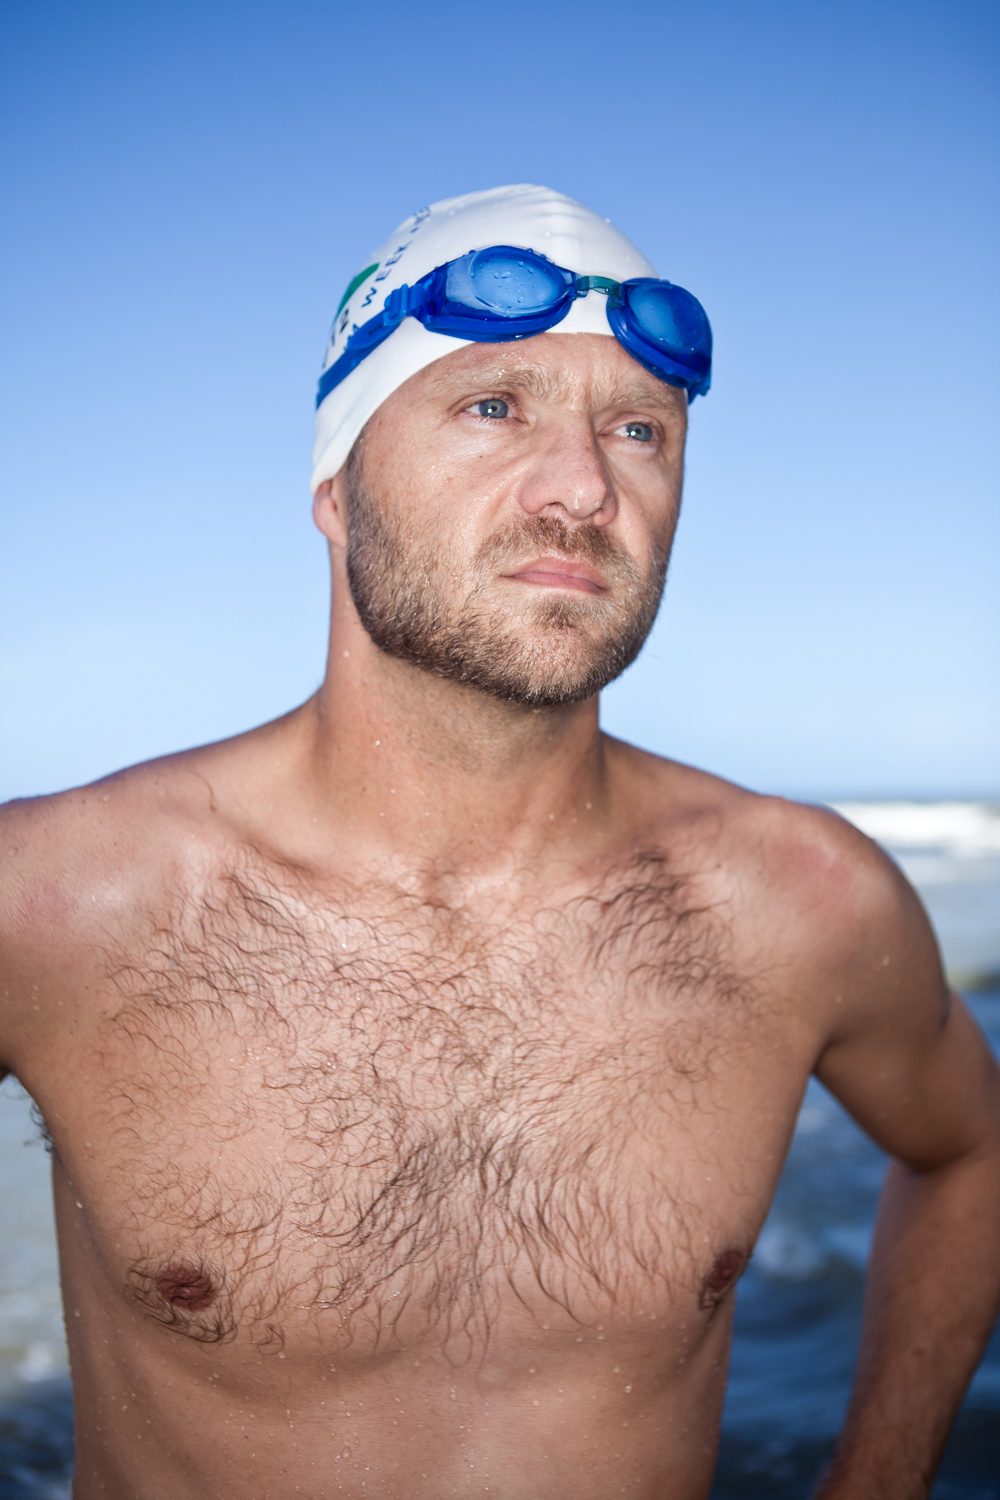 Brian Lanahan, college professor and swimmer